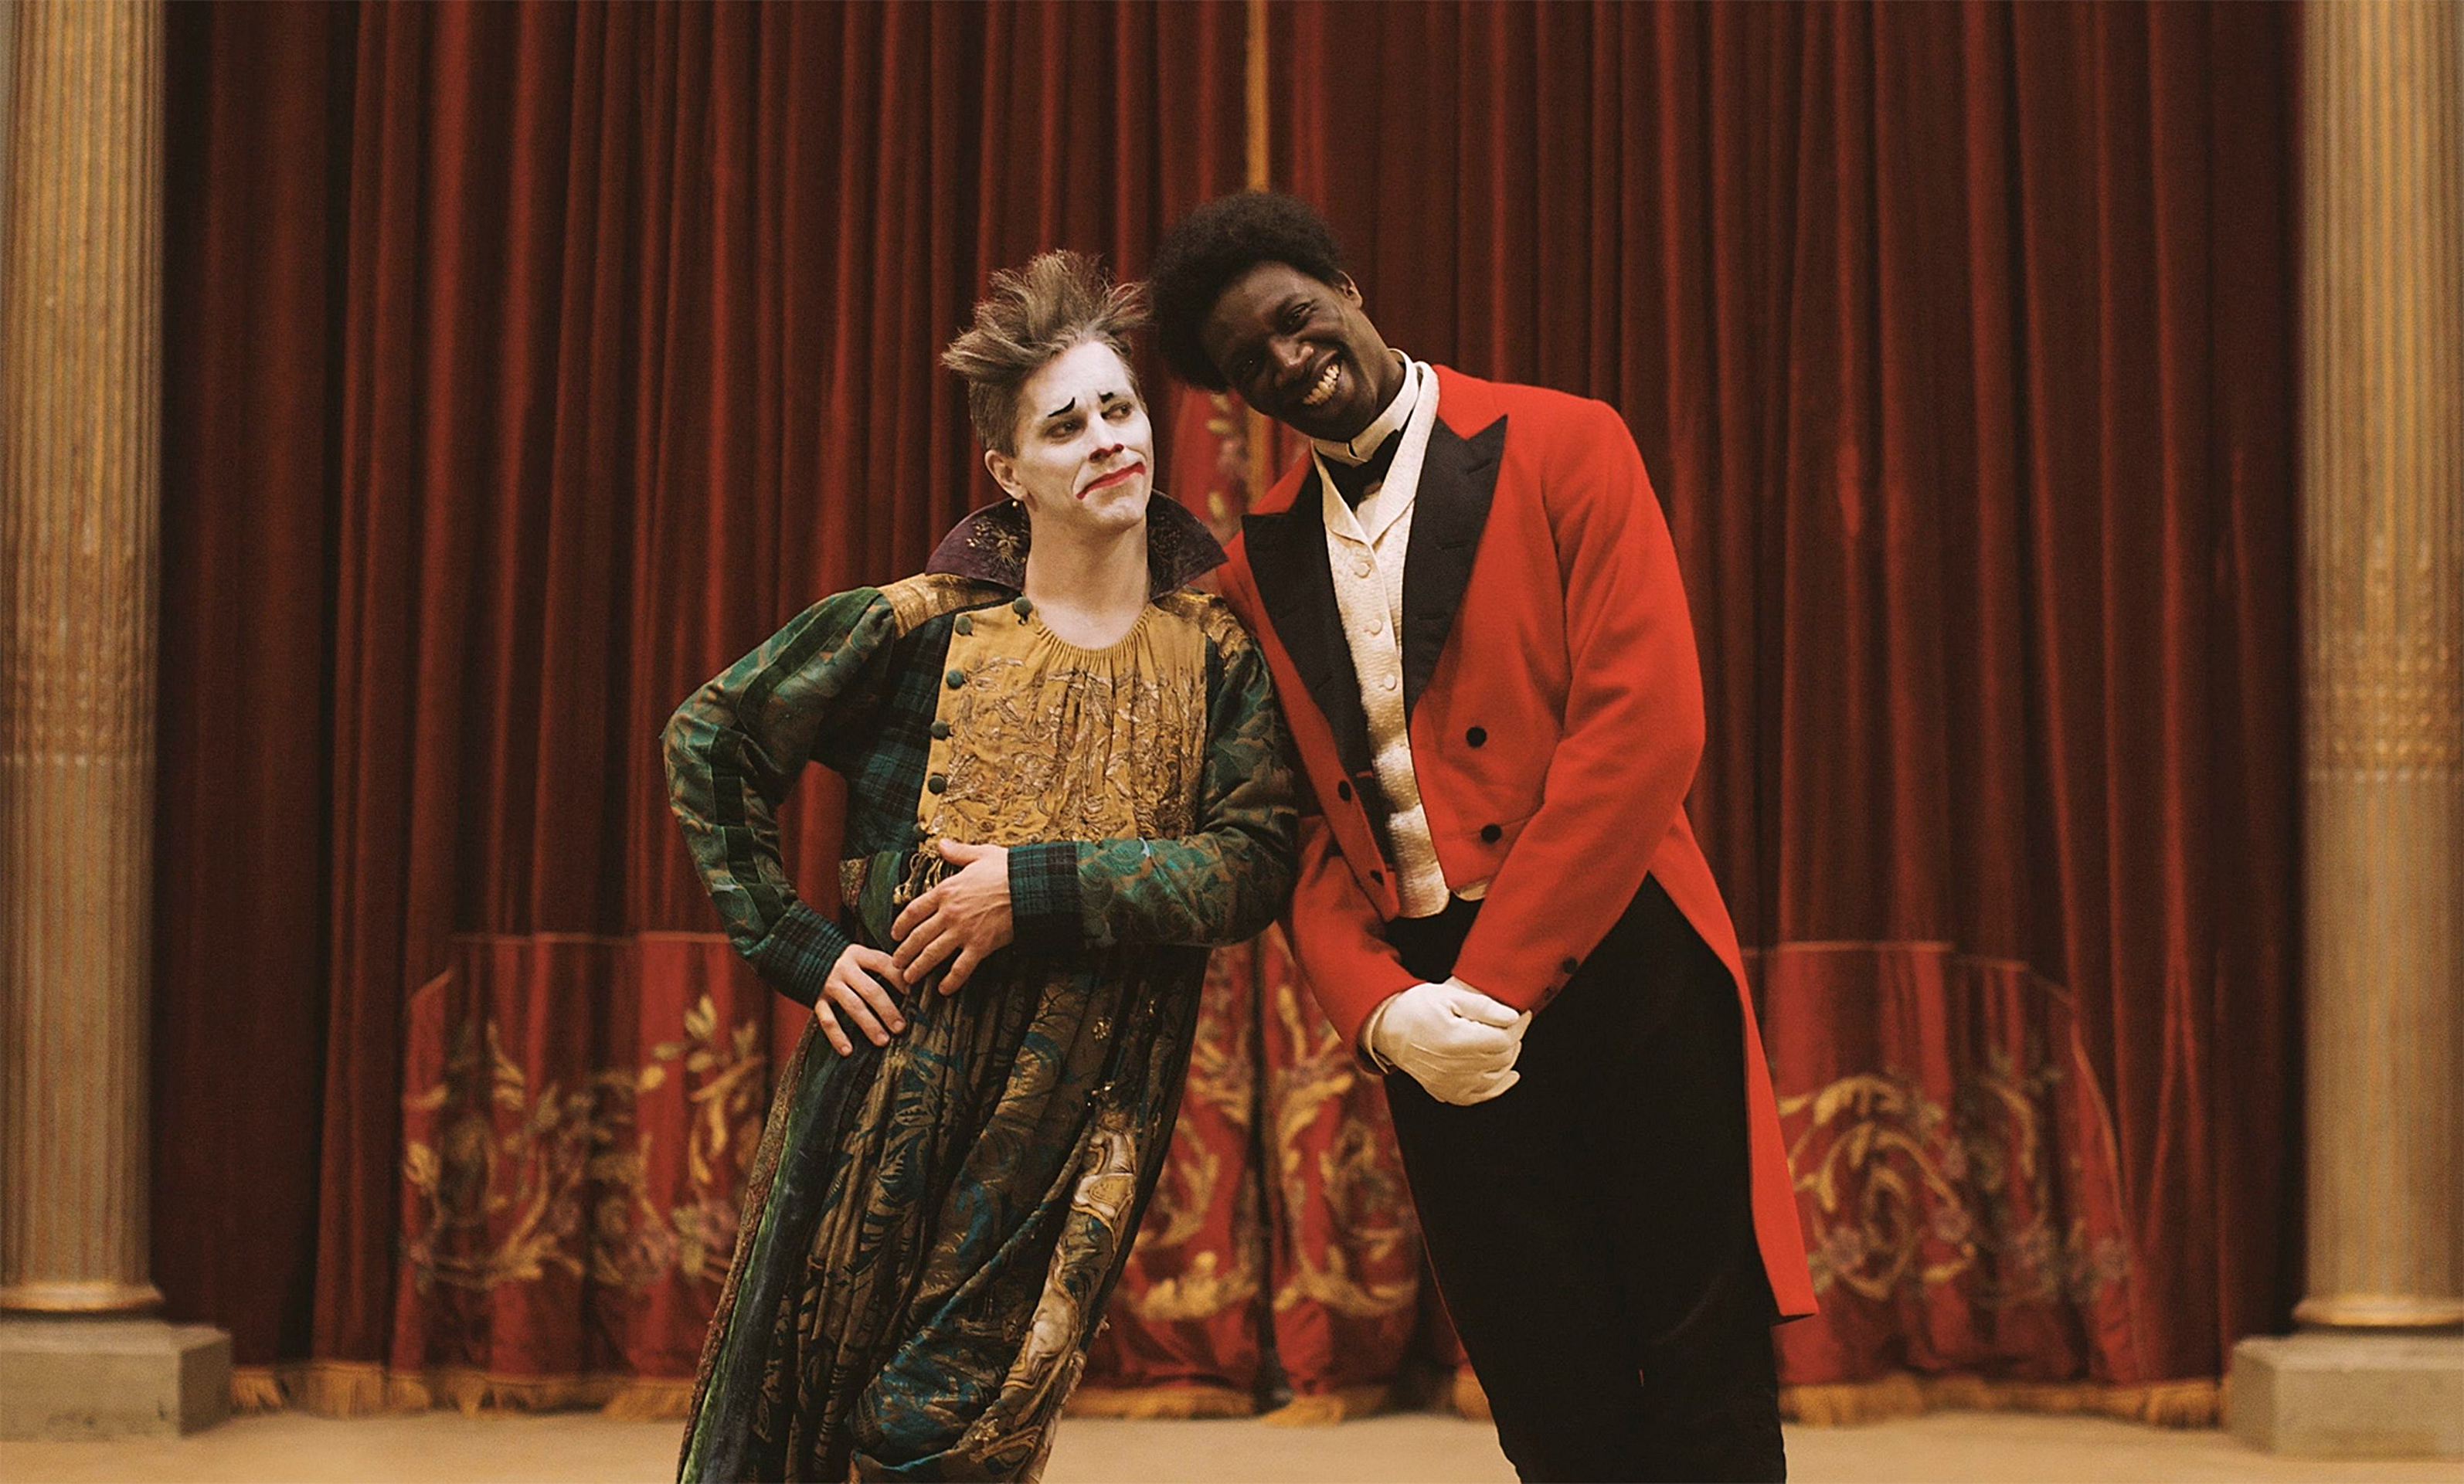 two victorian clowns from the film chocolat